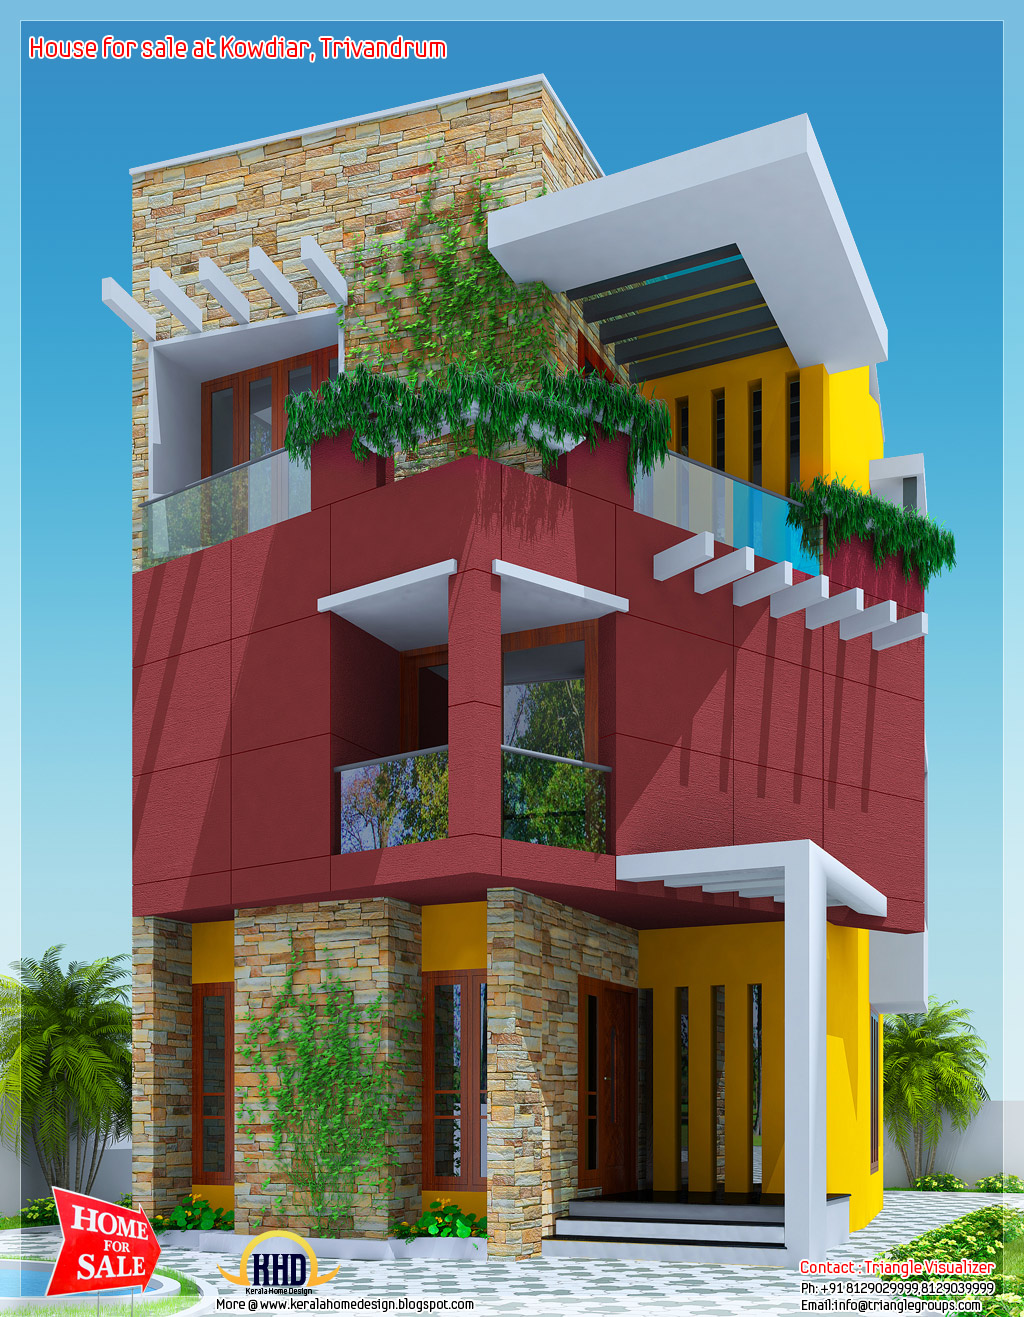 3 floor house for sale at kowdiar trivandrum home appliance Modern contemporary house plans for sale